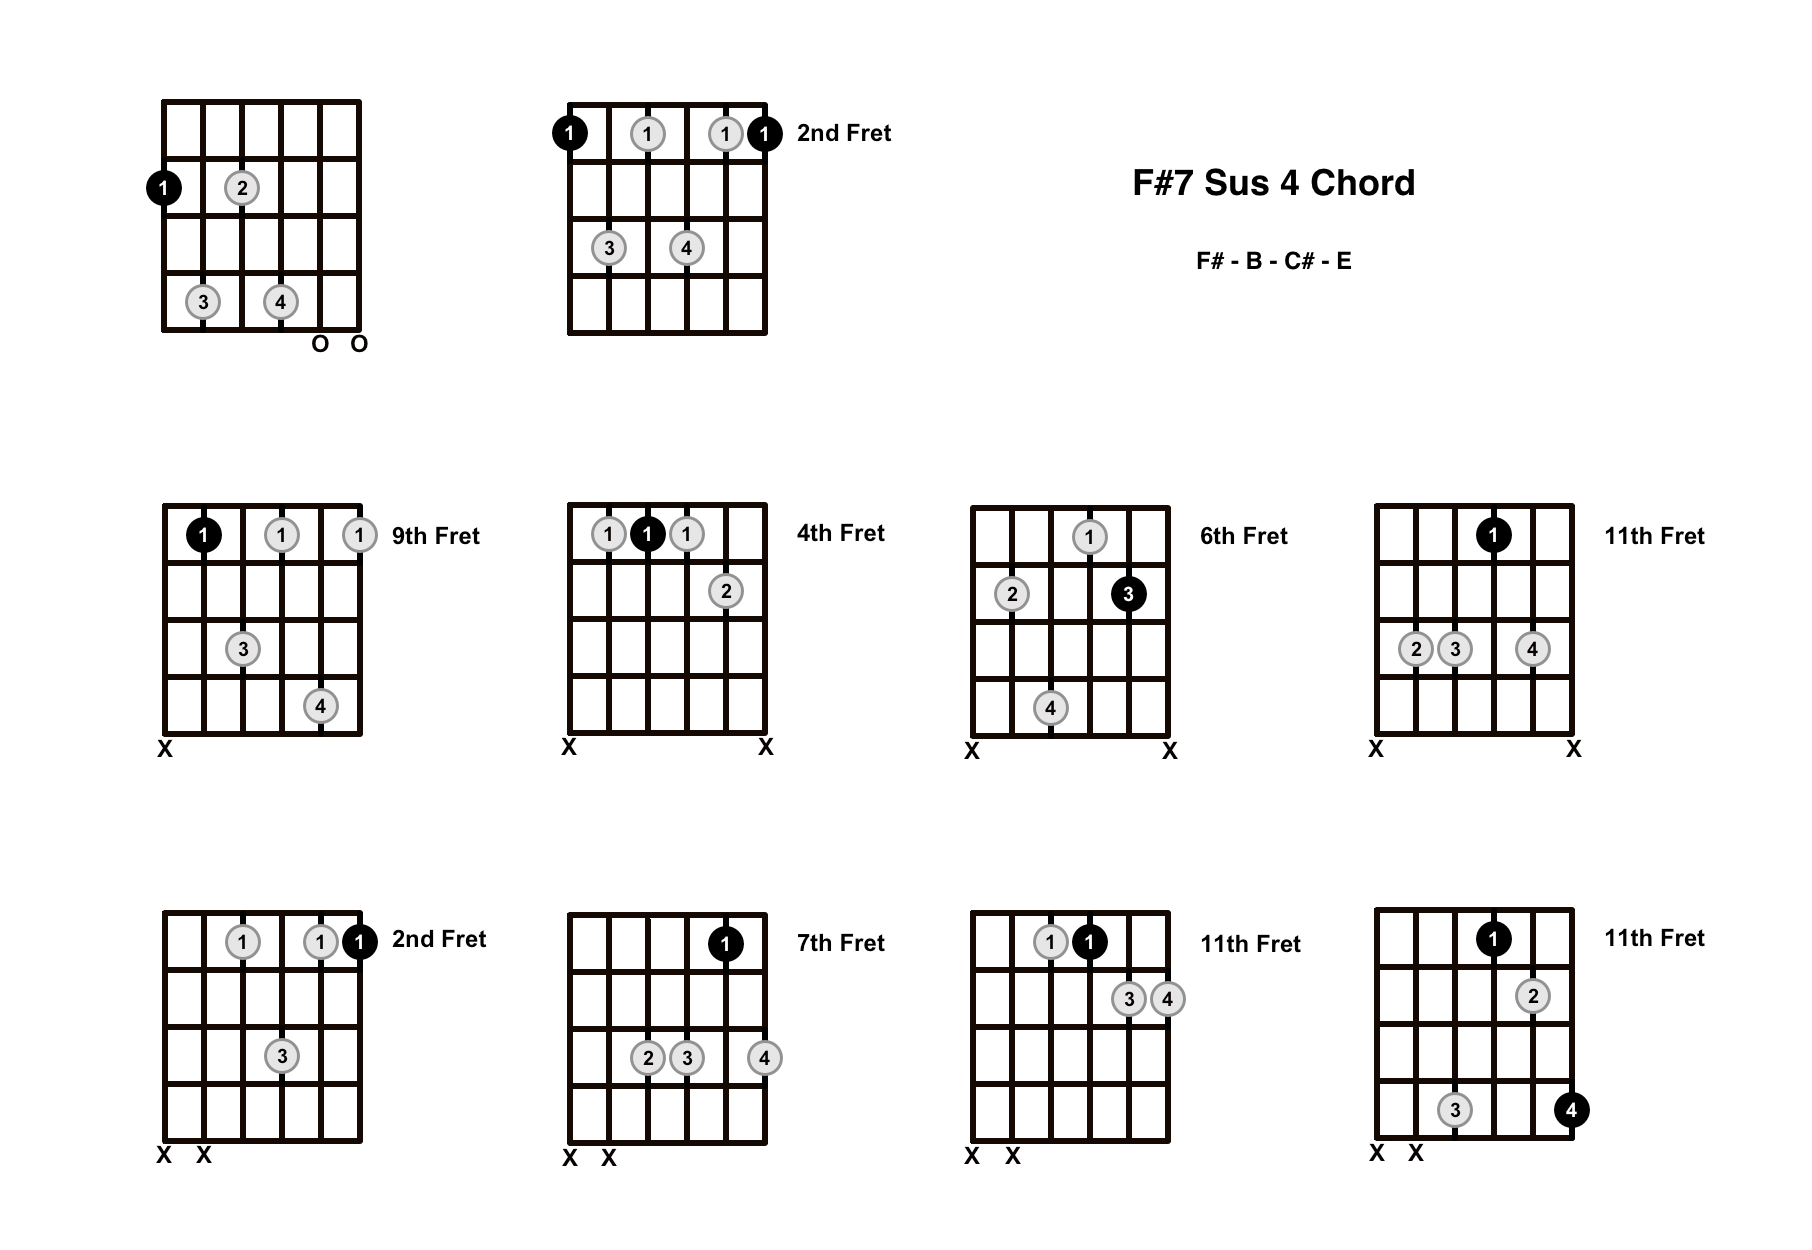 F#7 Sus 4 Chord On The Guitar (F Sharp 7 Suspended 4) – Diagrams, Finger Positions and Theory